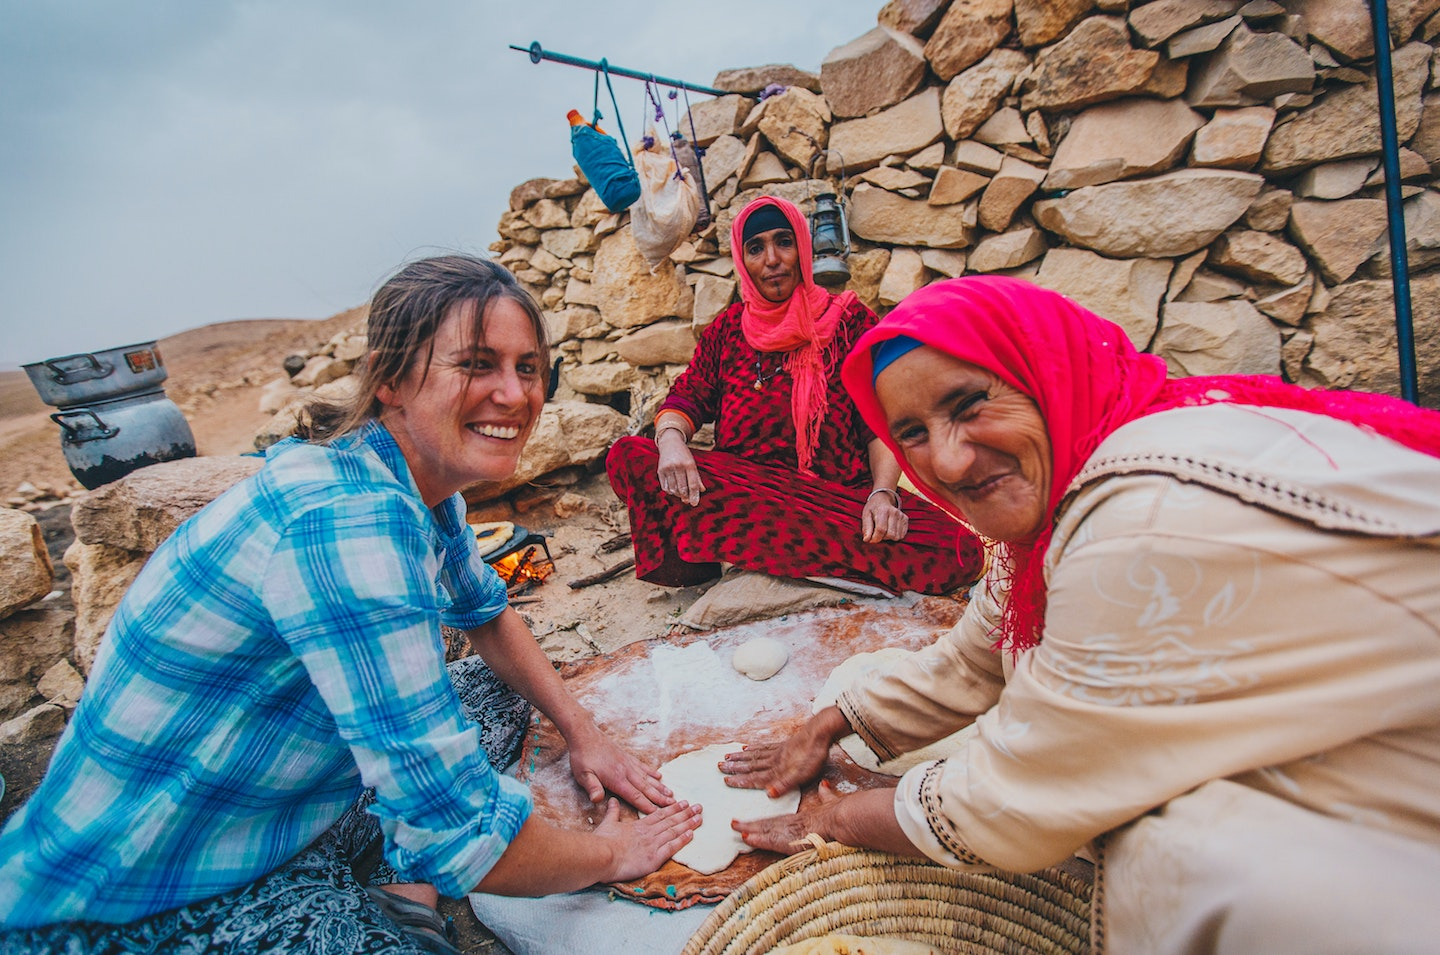 Book an itinerary that includes traveling with Berber nomads in Morocco.